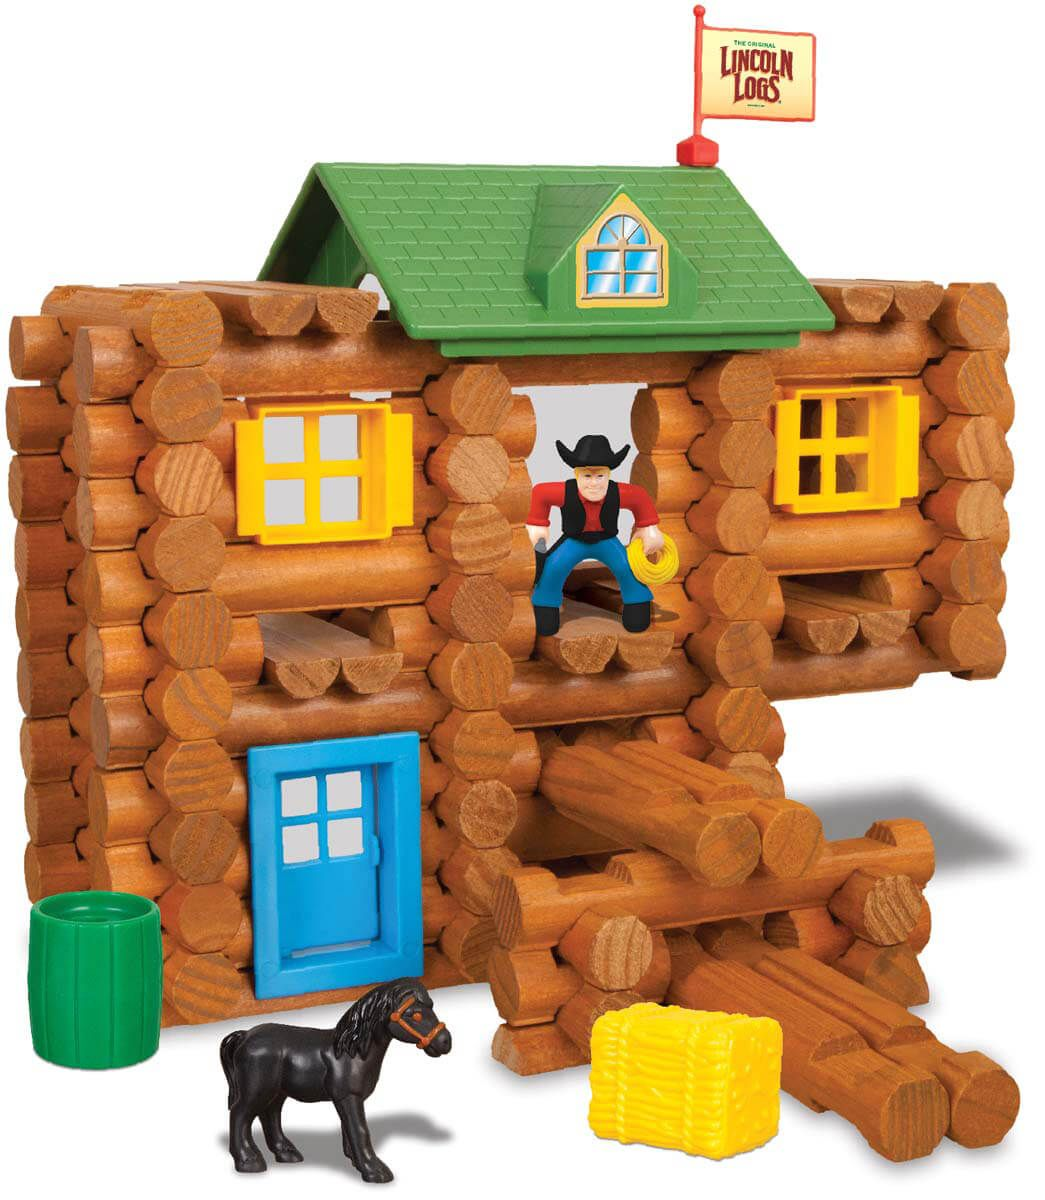 Redfield Ranch Lincoln Logs Toys Holiday Gift Guide